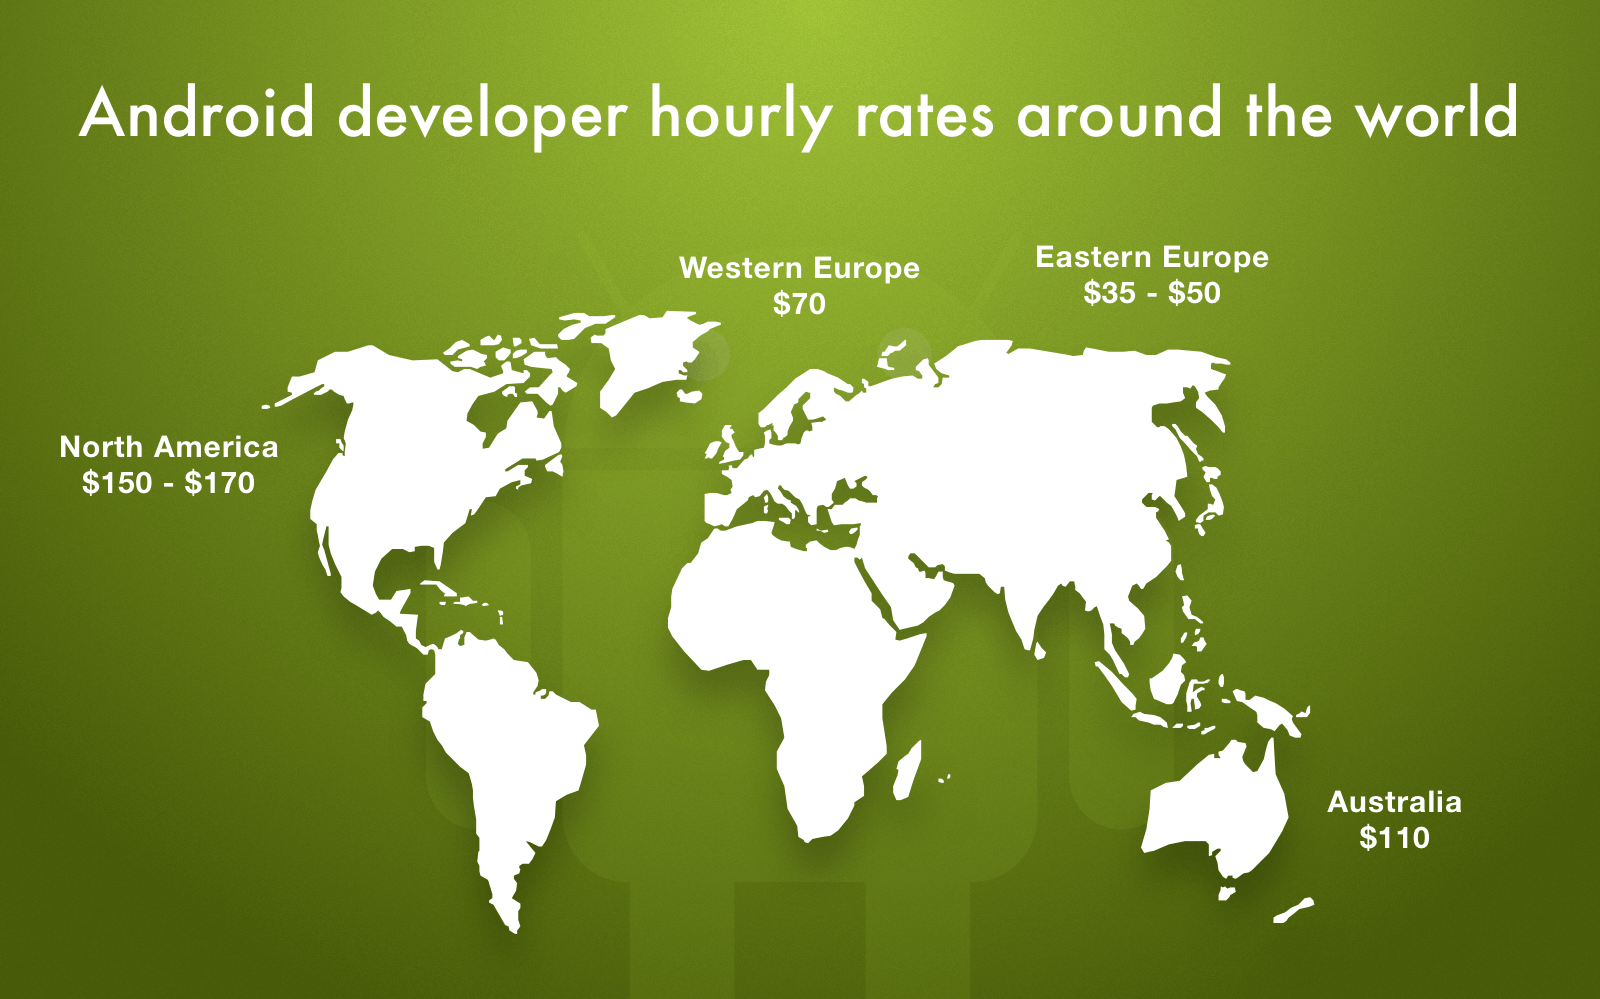 android developer per hour rate